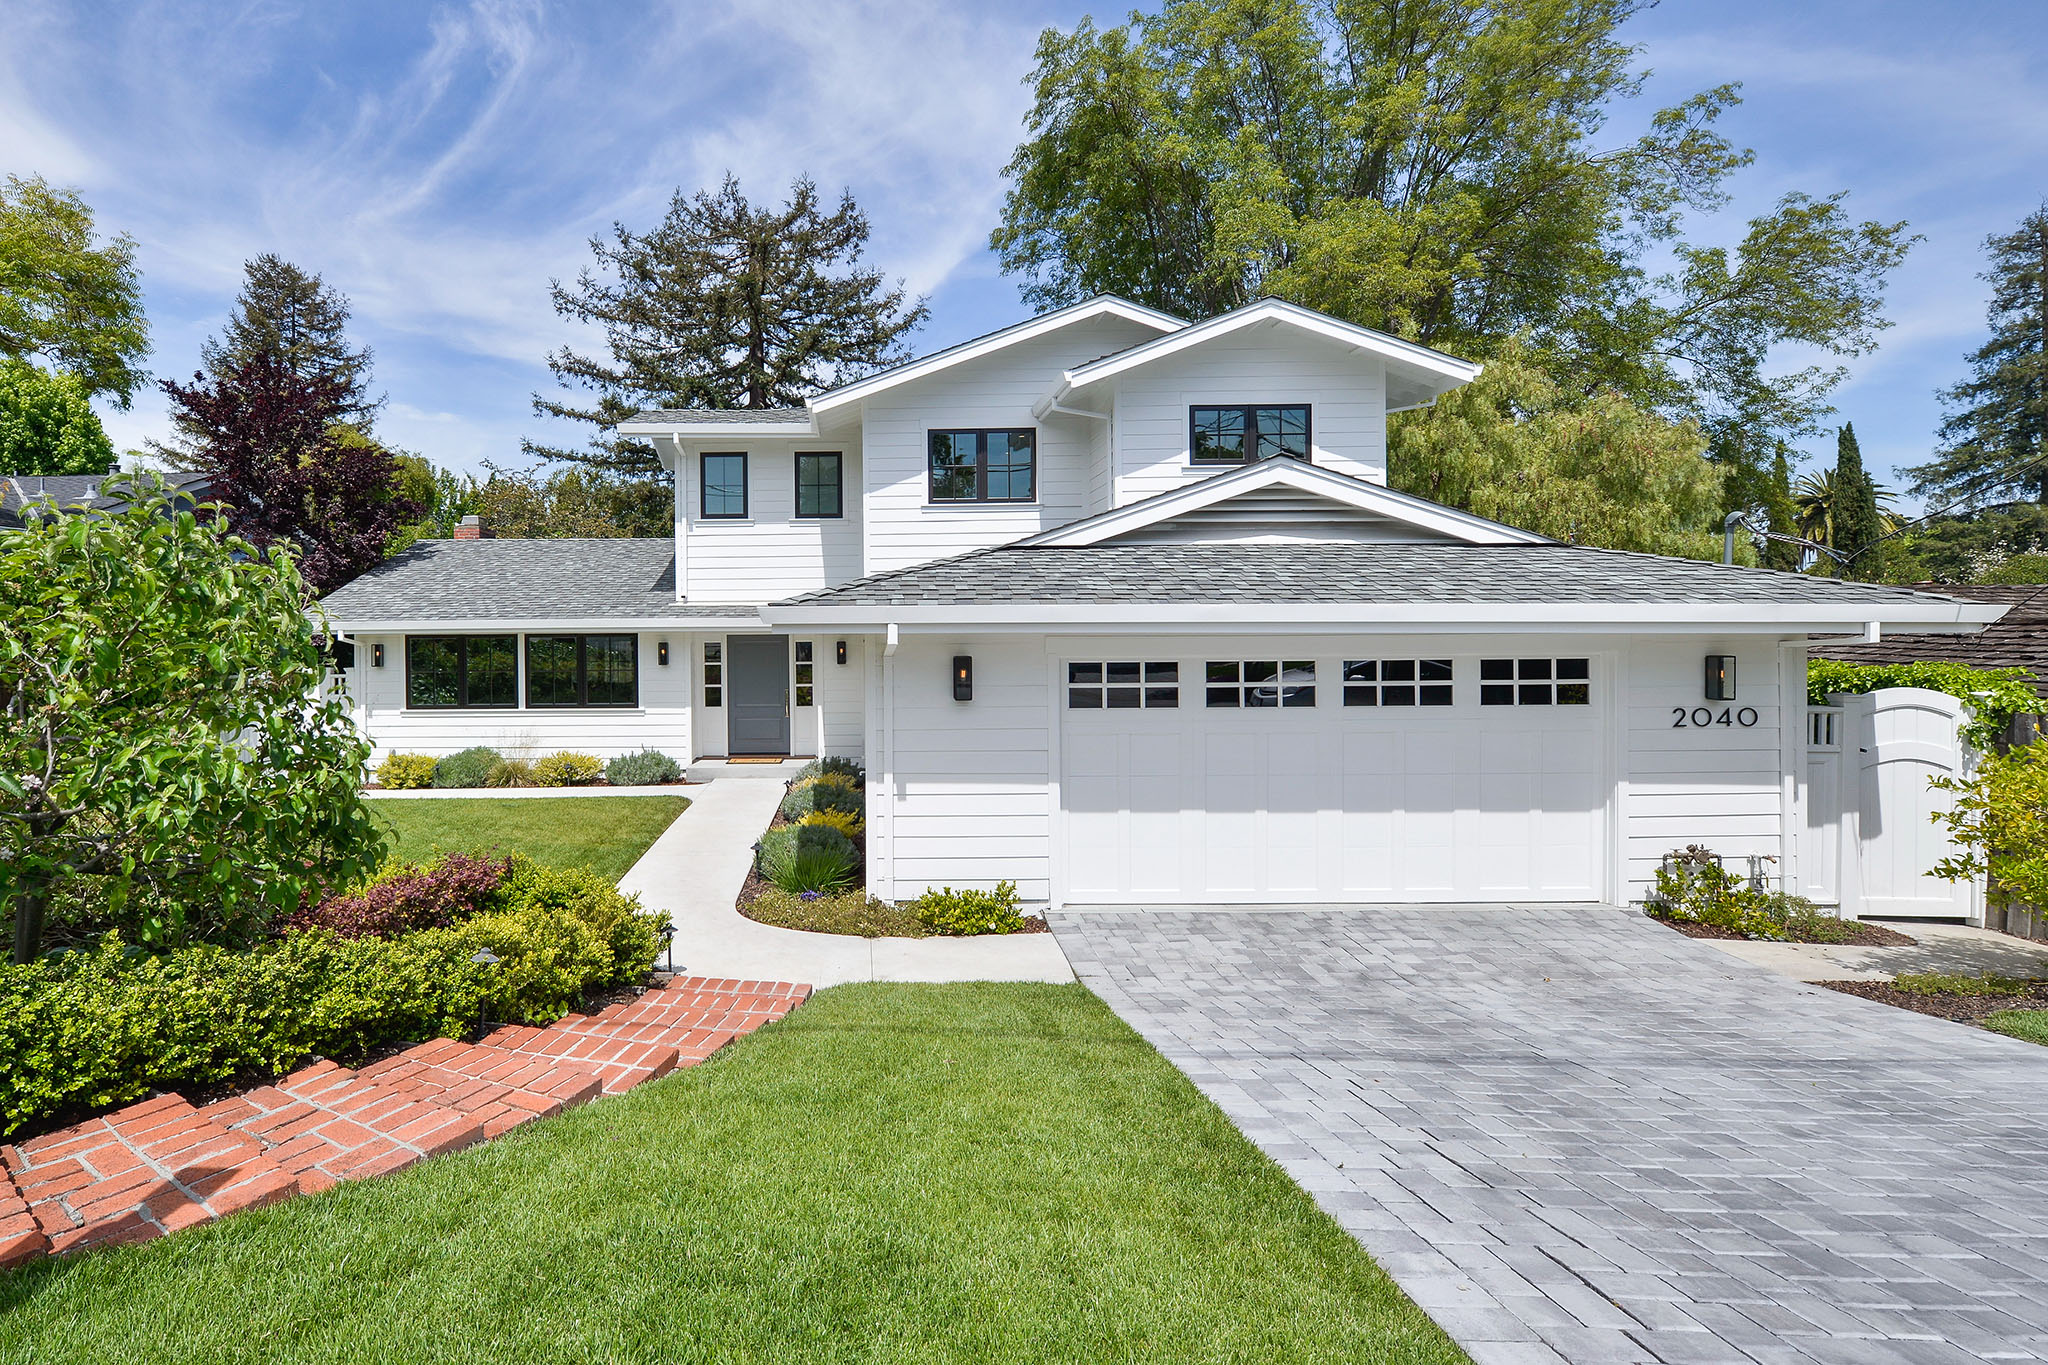 2040 Nassau Dr, Redwood City | $2,825,000